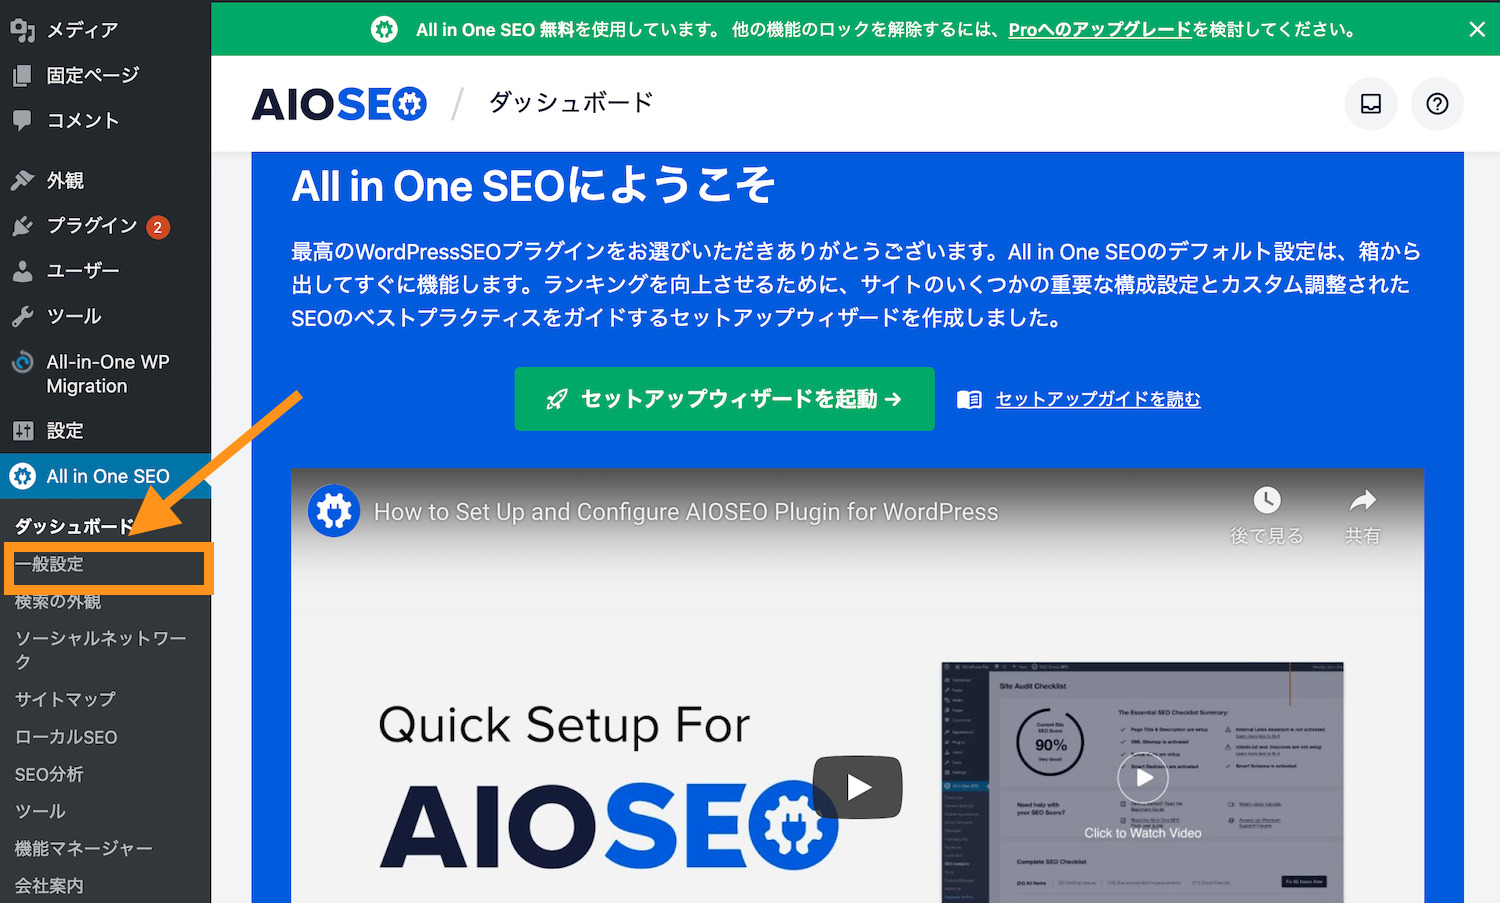 All in One SEO>一般設定を選択